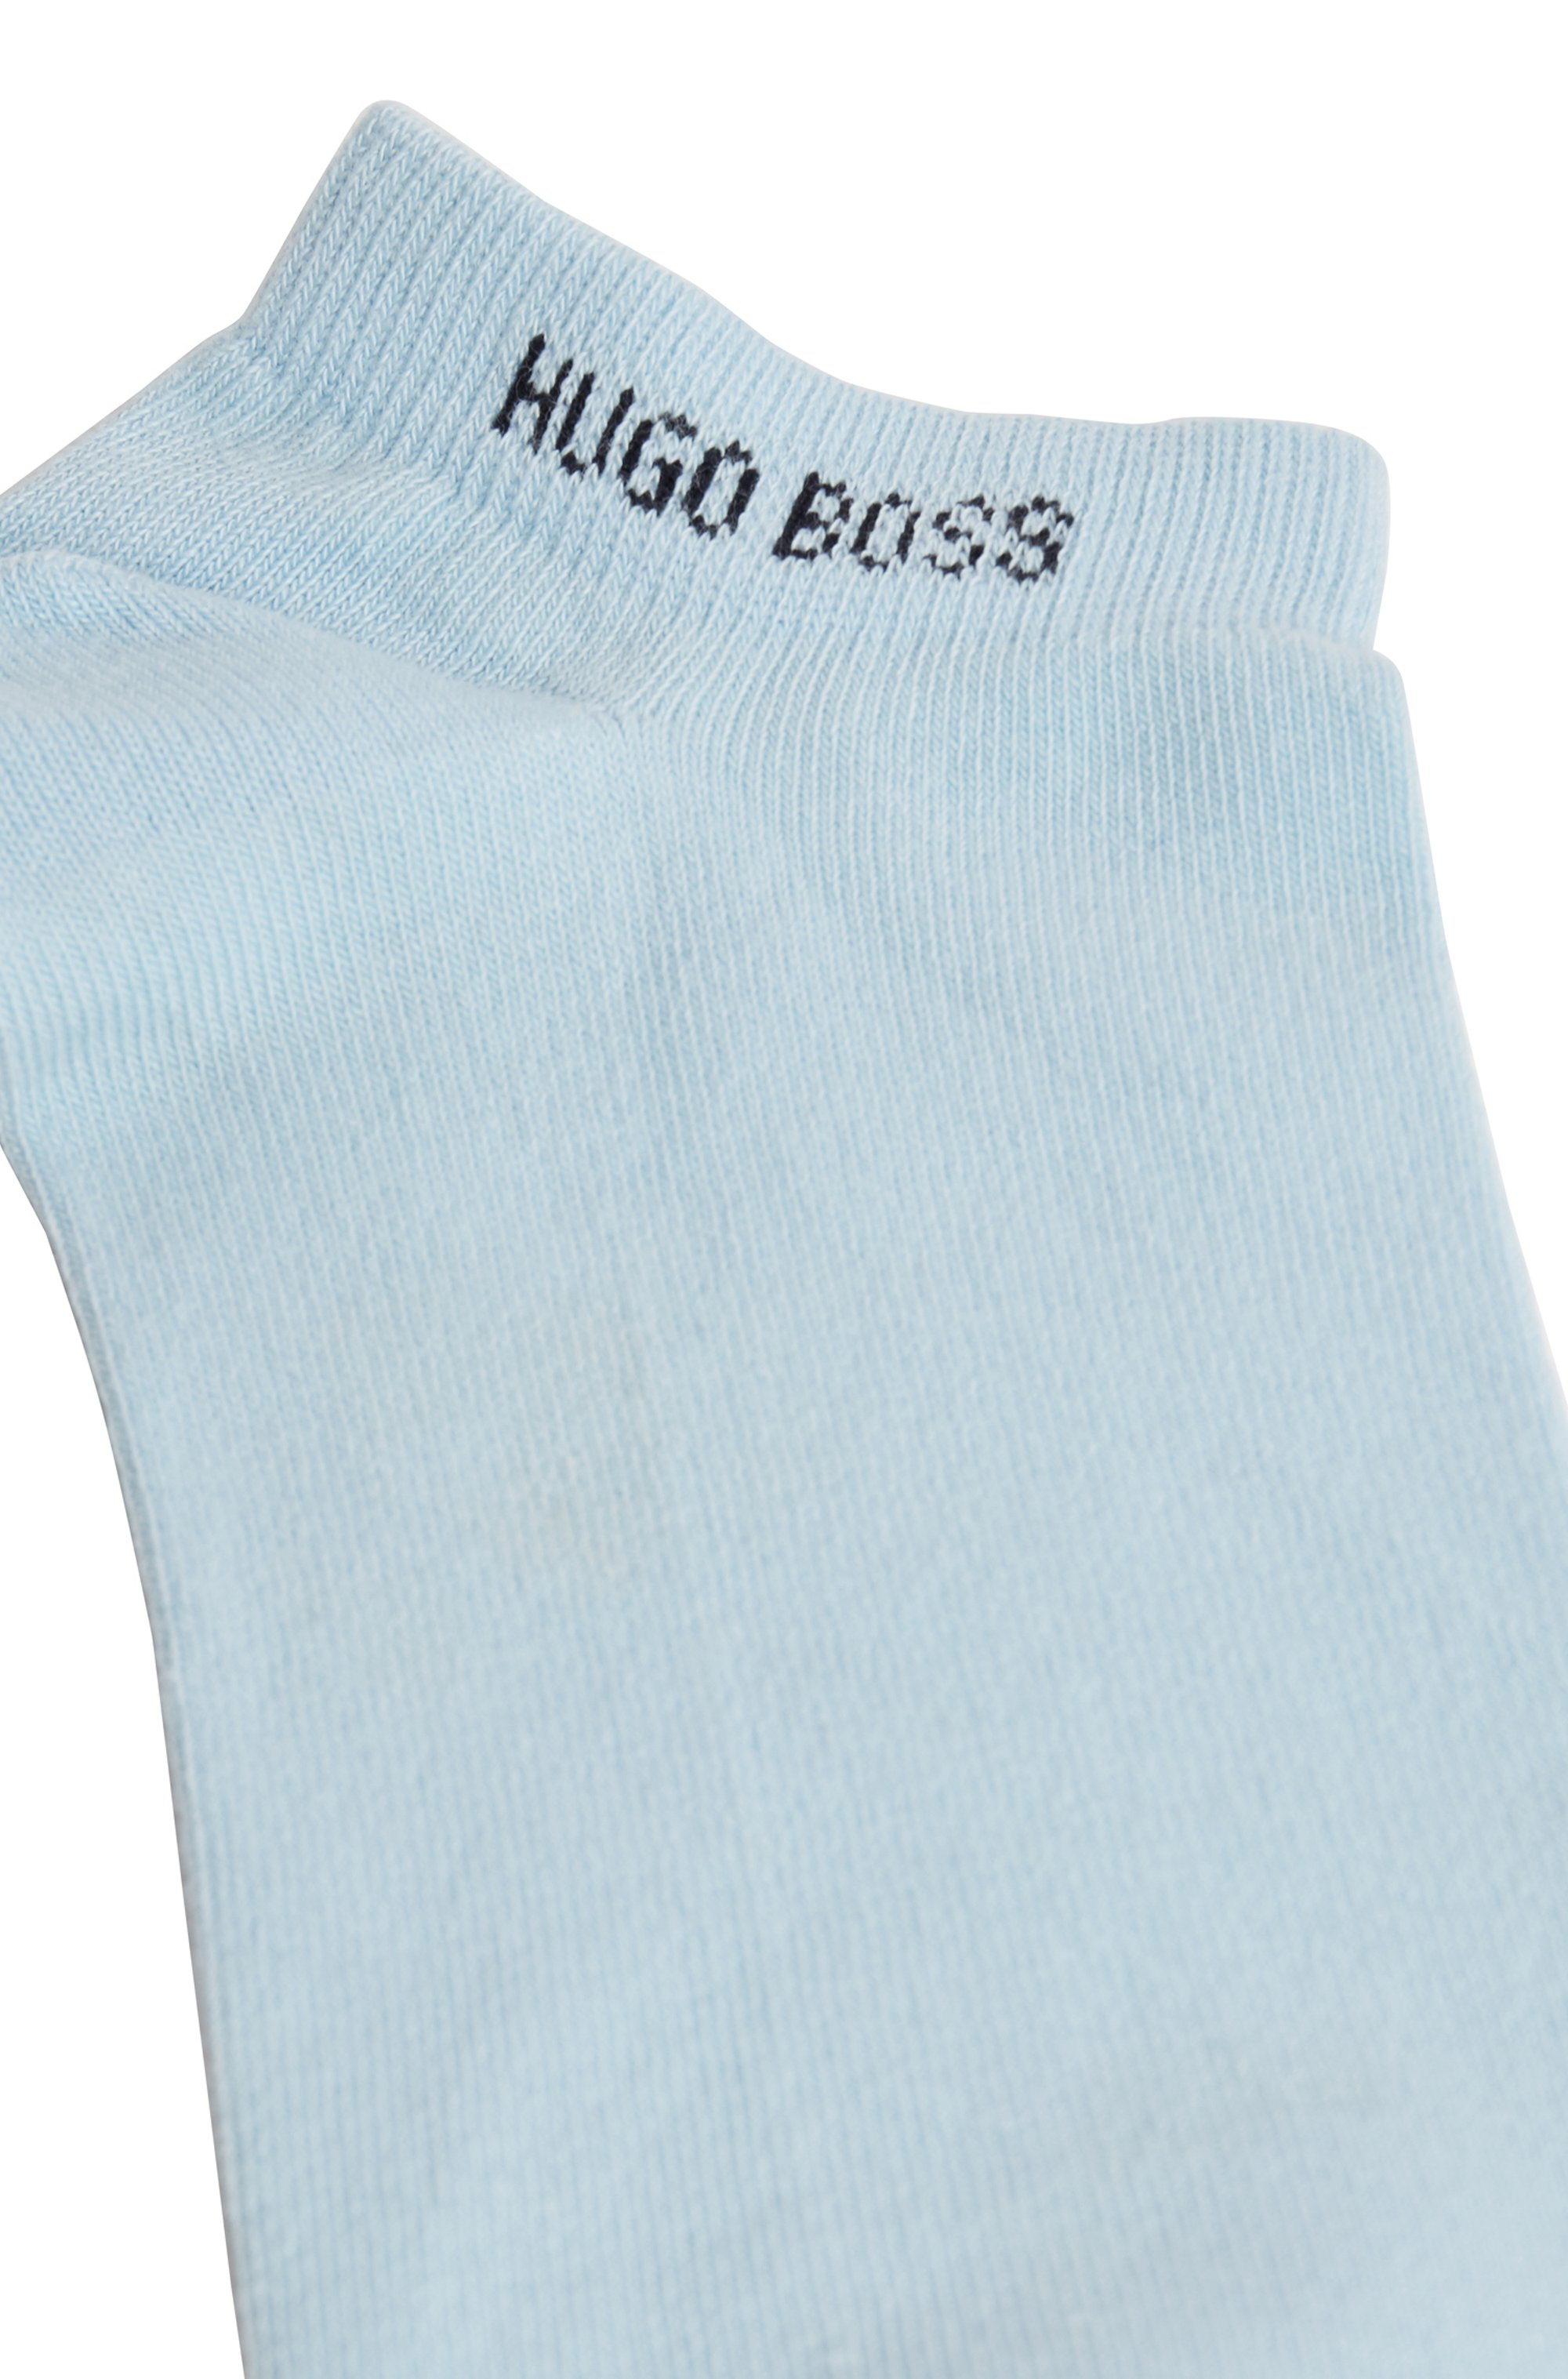 Two-pack of ankle socks in a cotton blend